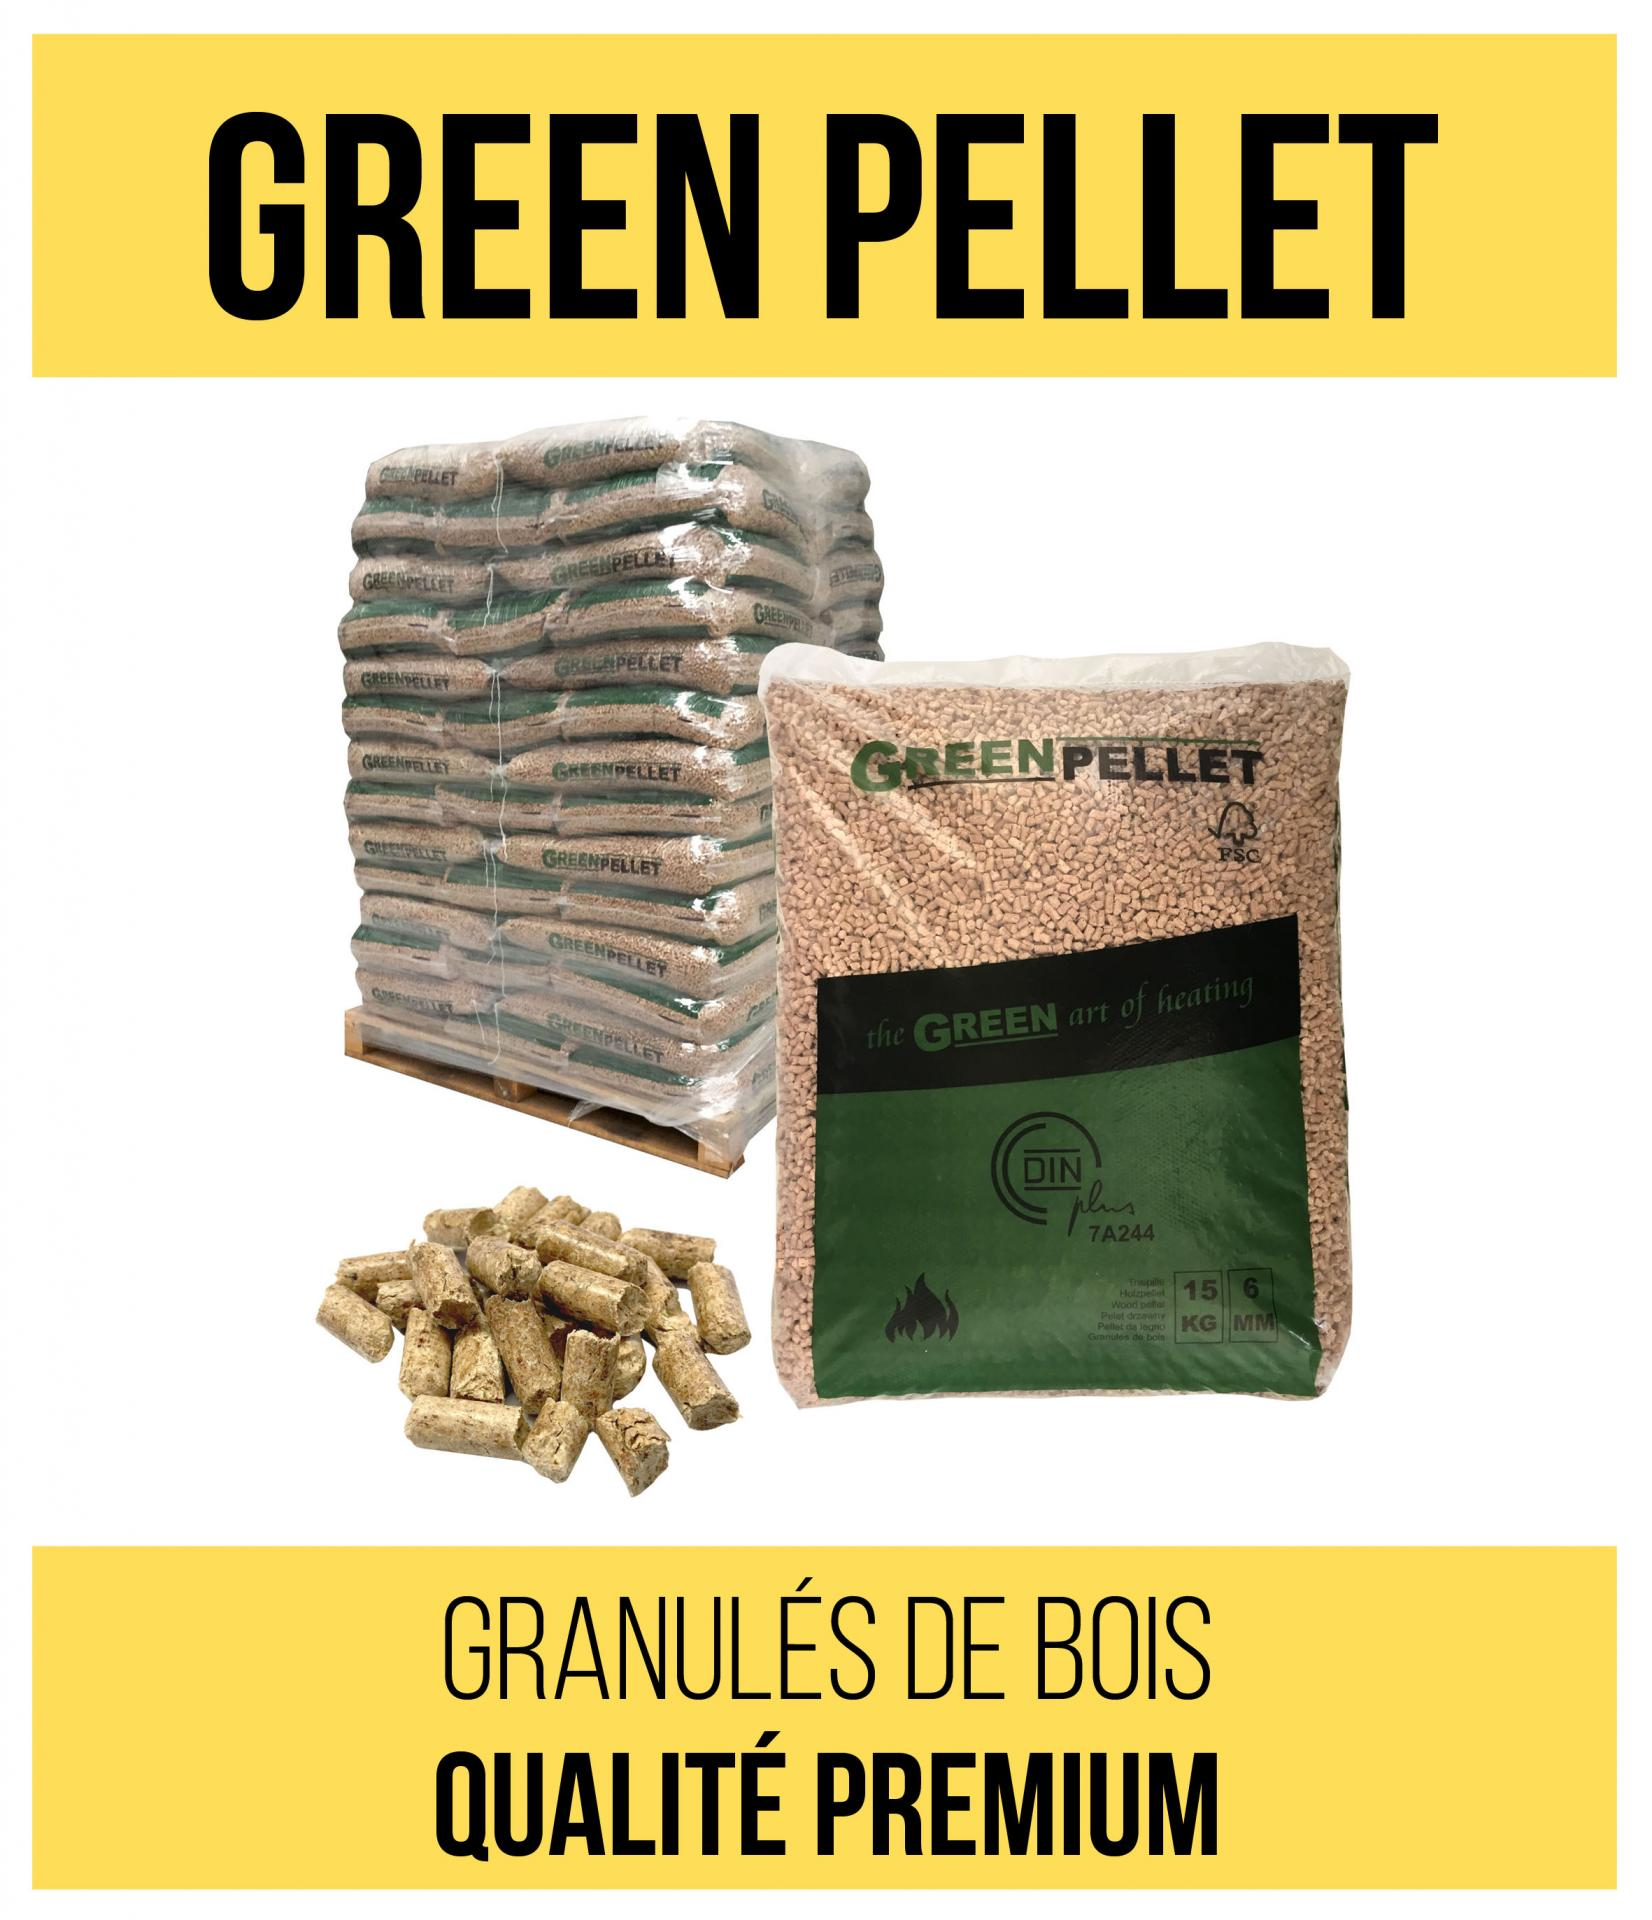 Articles comple mentaires green pellet